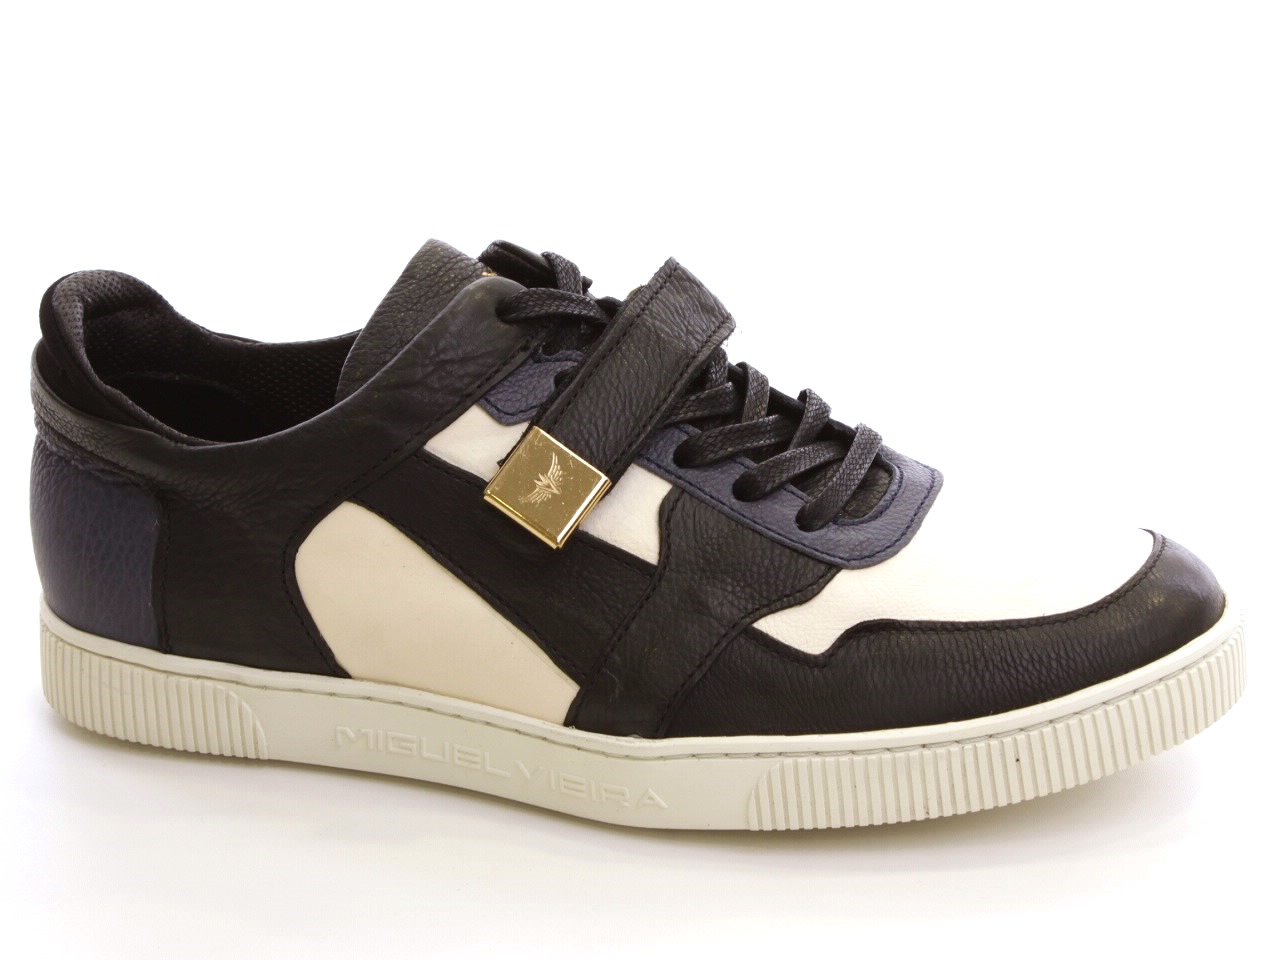 Sneakers and Espadrilles Miguel Vieira - 233 MV4743